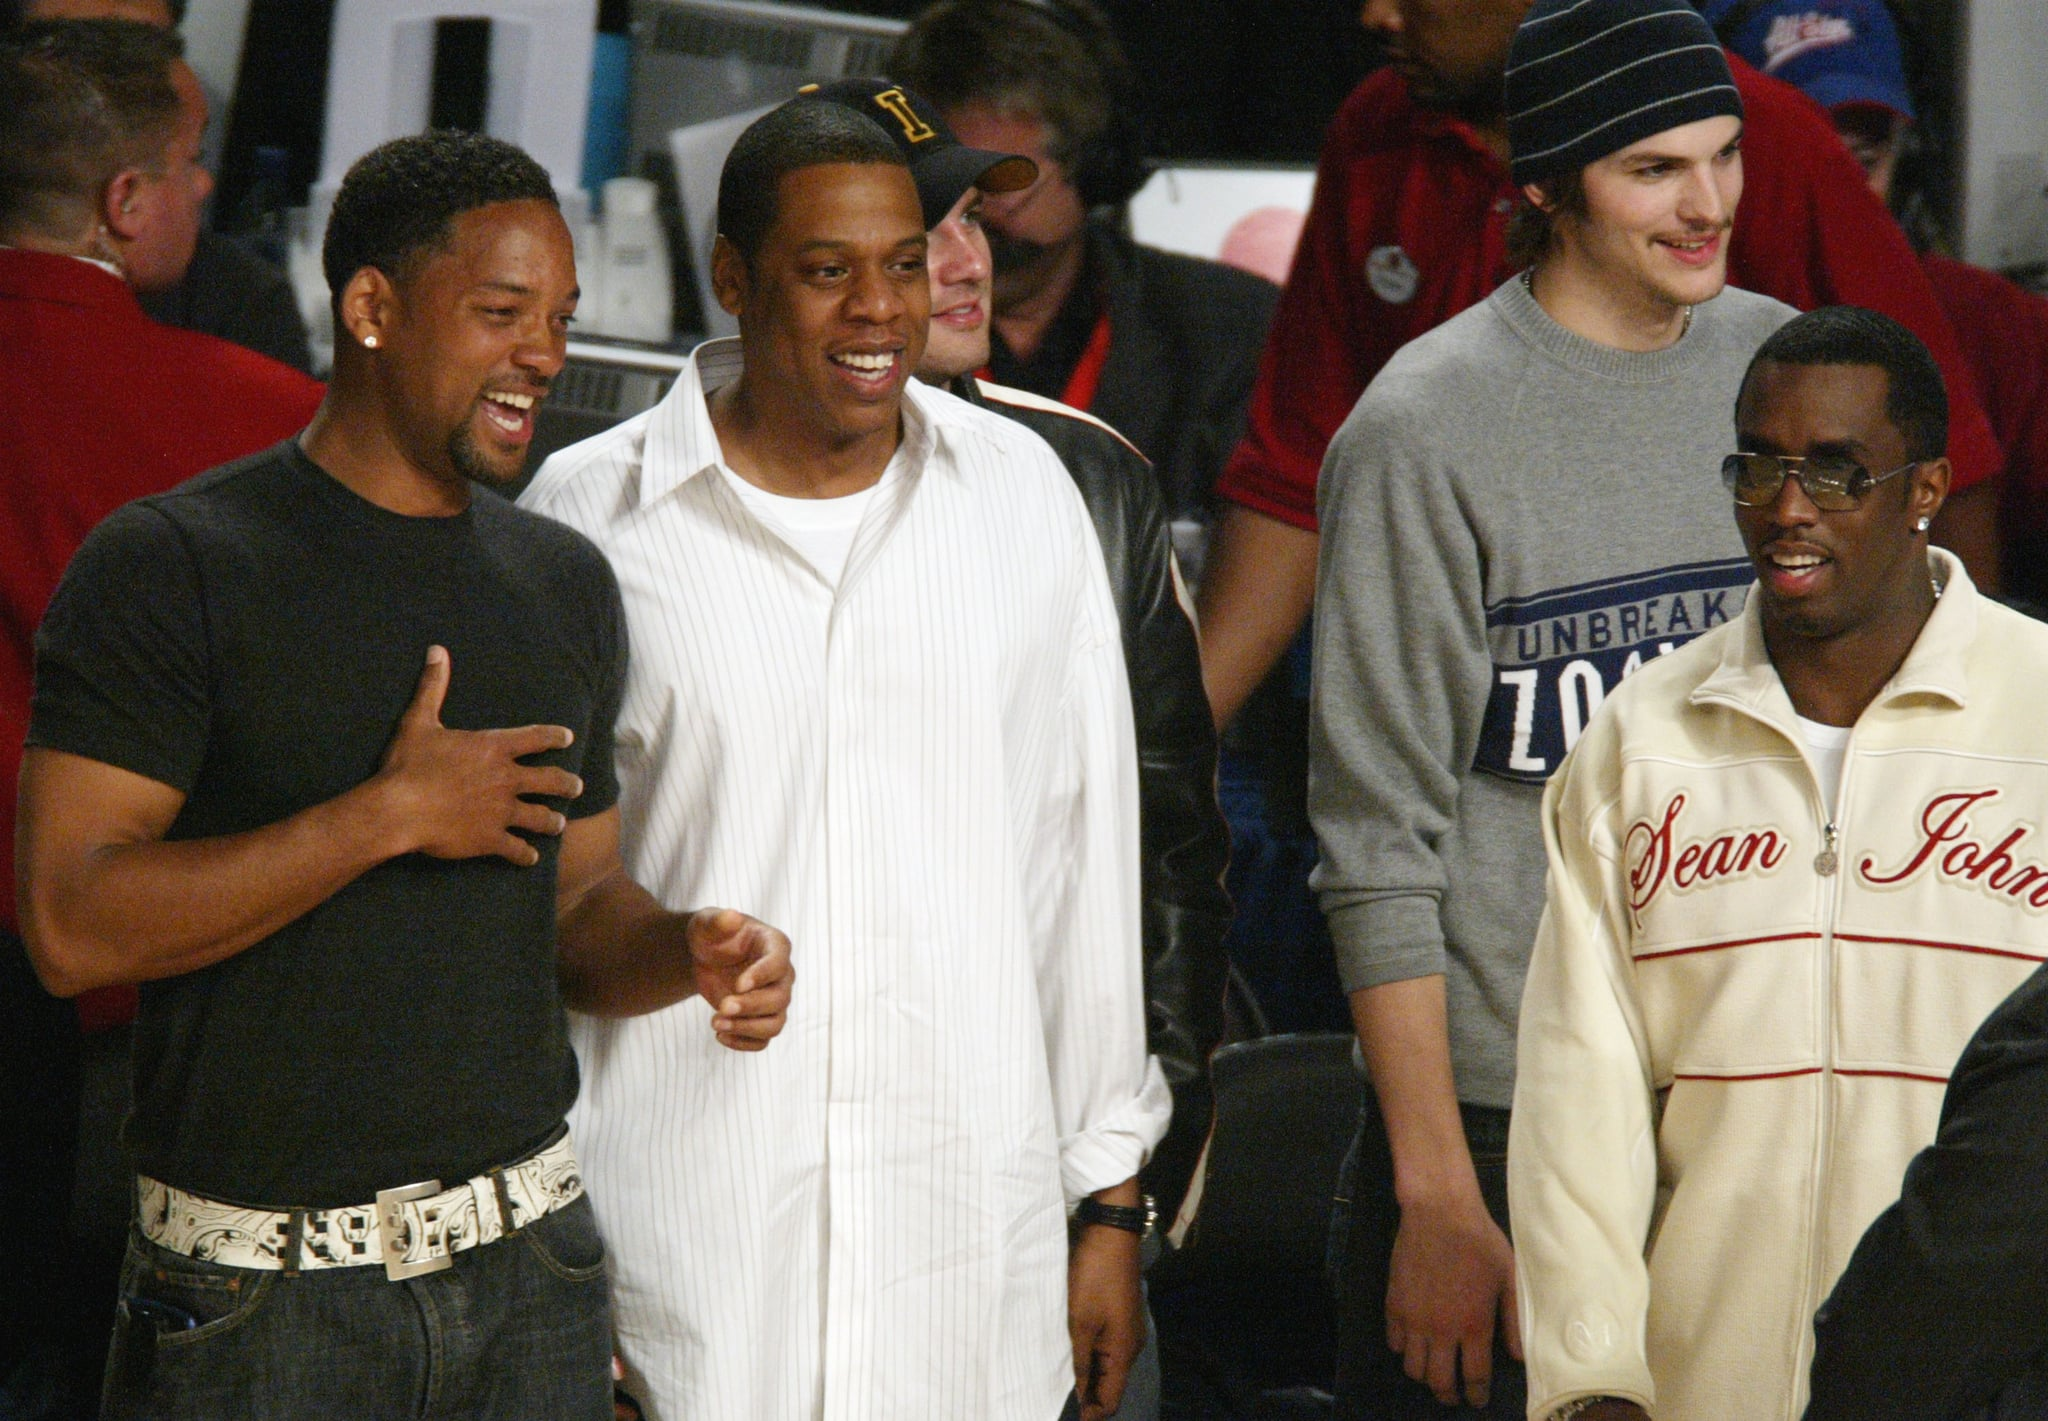 Will Smith shared a laugh with Jay Z, Diddy, and Ashton Kutcher at a game in February 2004.